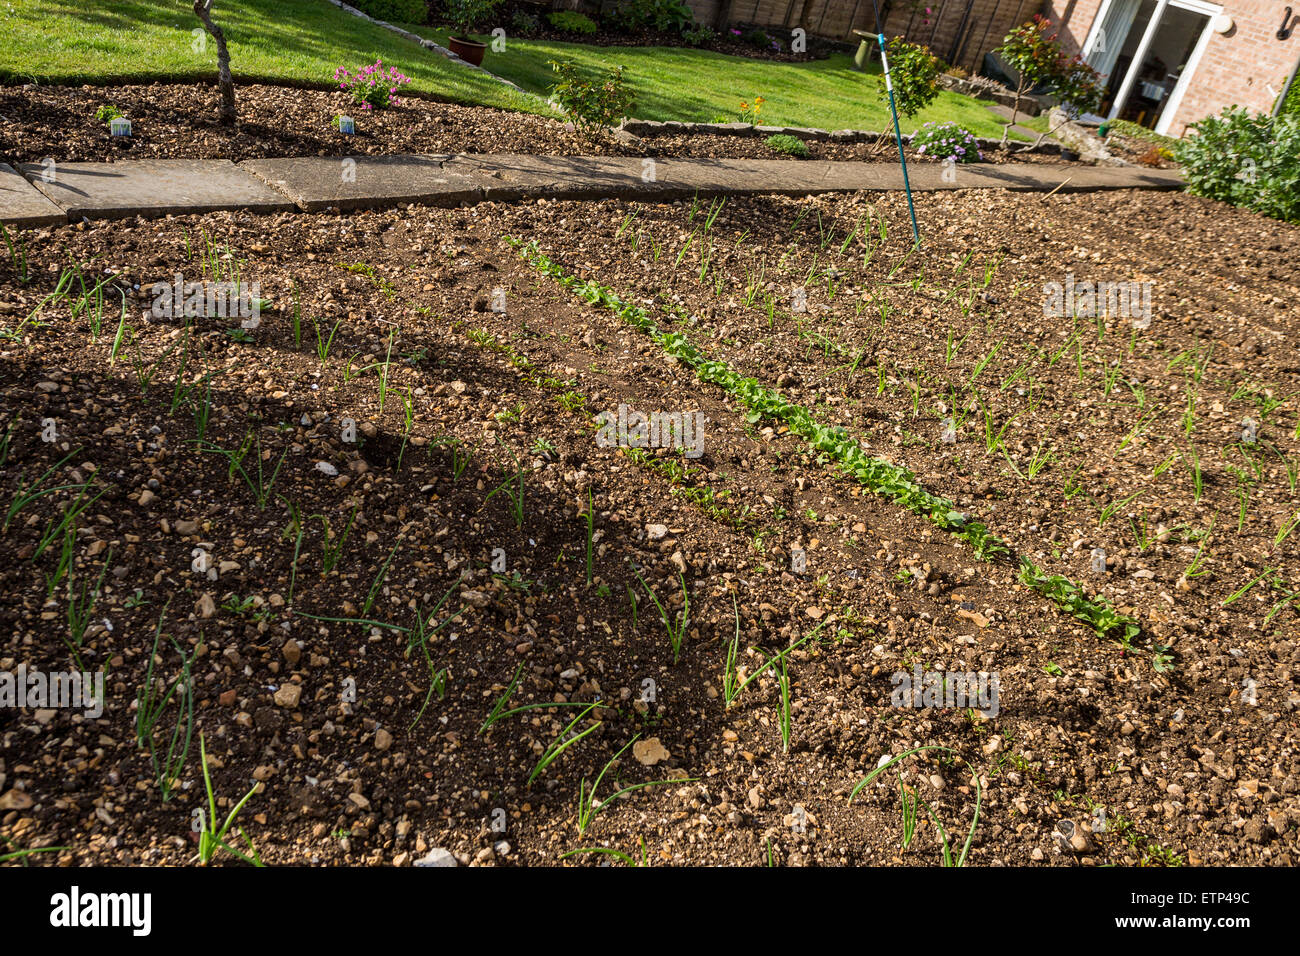 Garden Suburban House Stock Photos & Garden Suburban House Stock ...